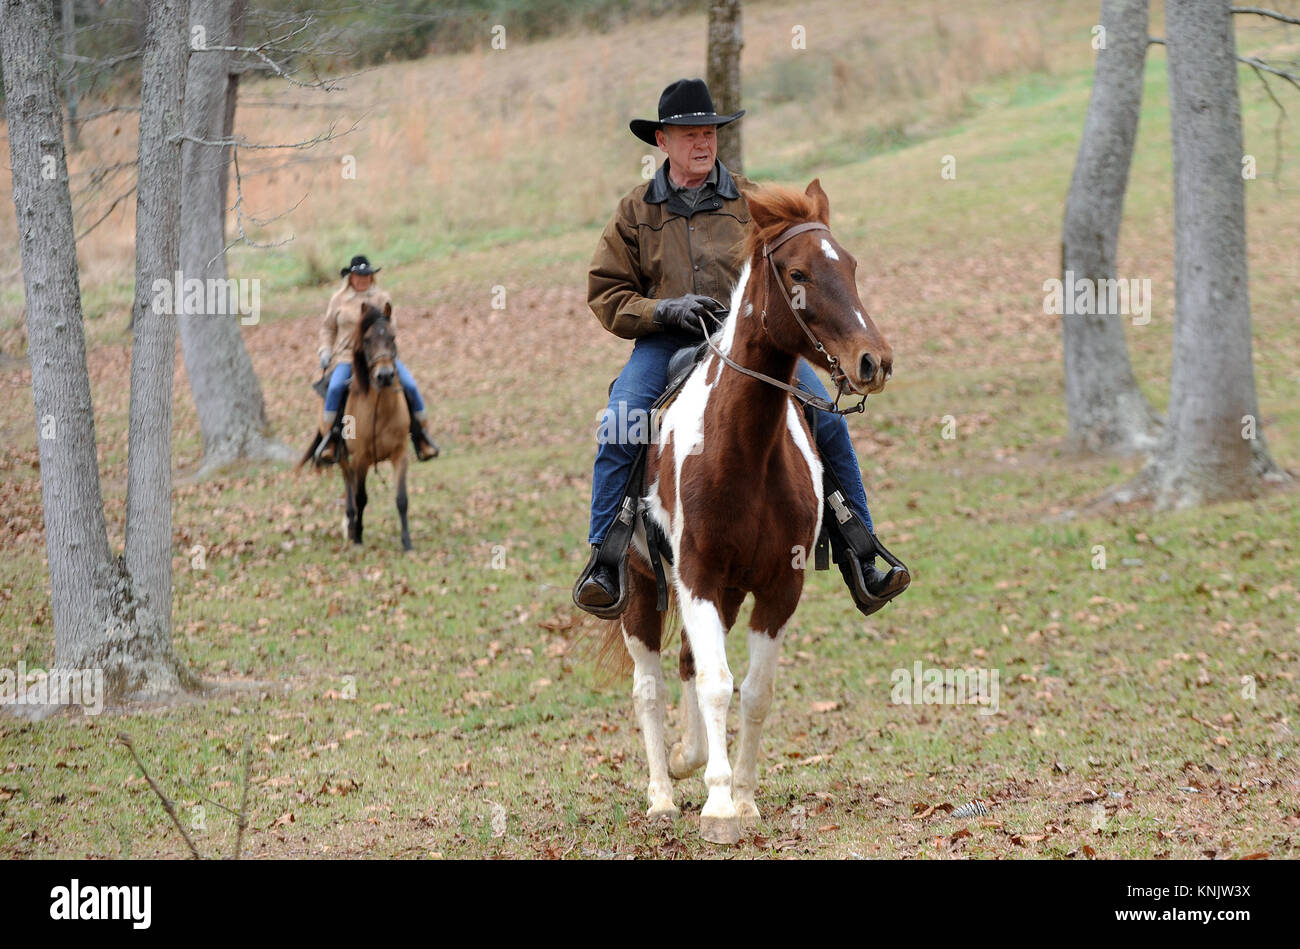 Gallant, United States. 12th Dec, 2017. Judge Roy Moore and his wife, Kayla, arrive on horseback to vote at the - Stock Image